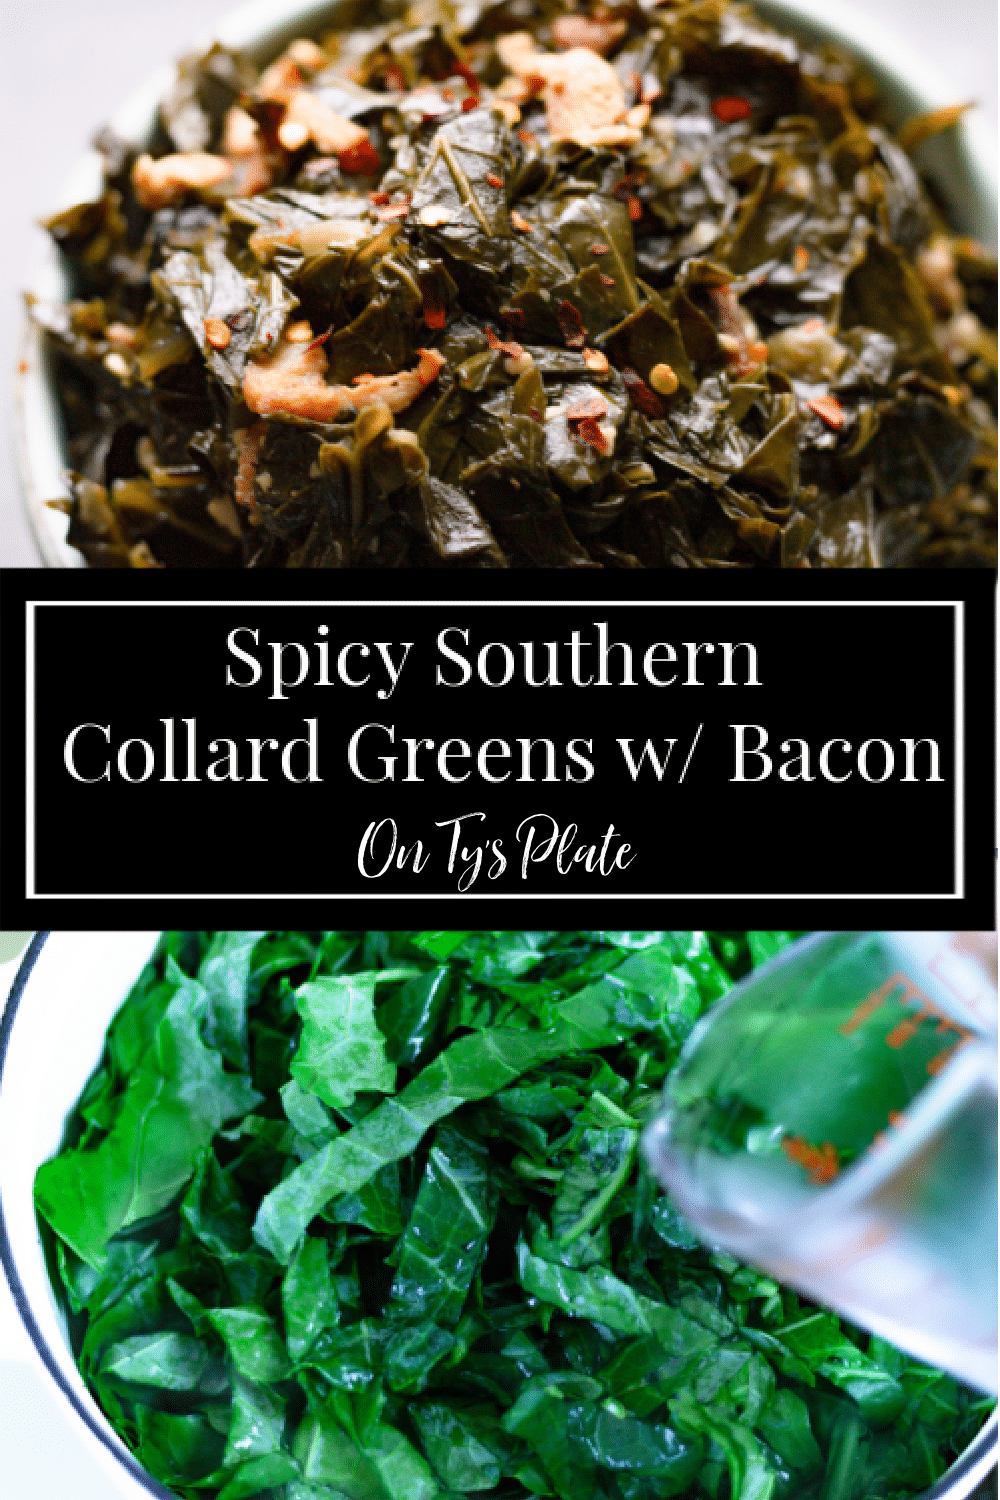 Spicy Southern Collard Greens With Bacon Soulful Broth Braised Collard Greens With Bacon And A In 2020 Southern Collard Greens Collard Greens With Bacon Collard Greens